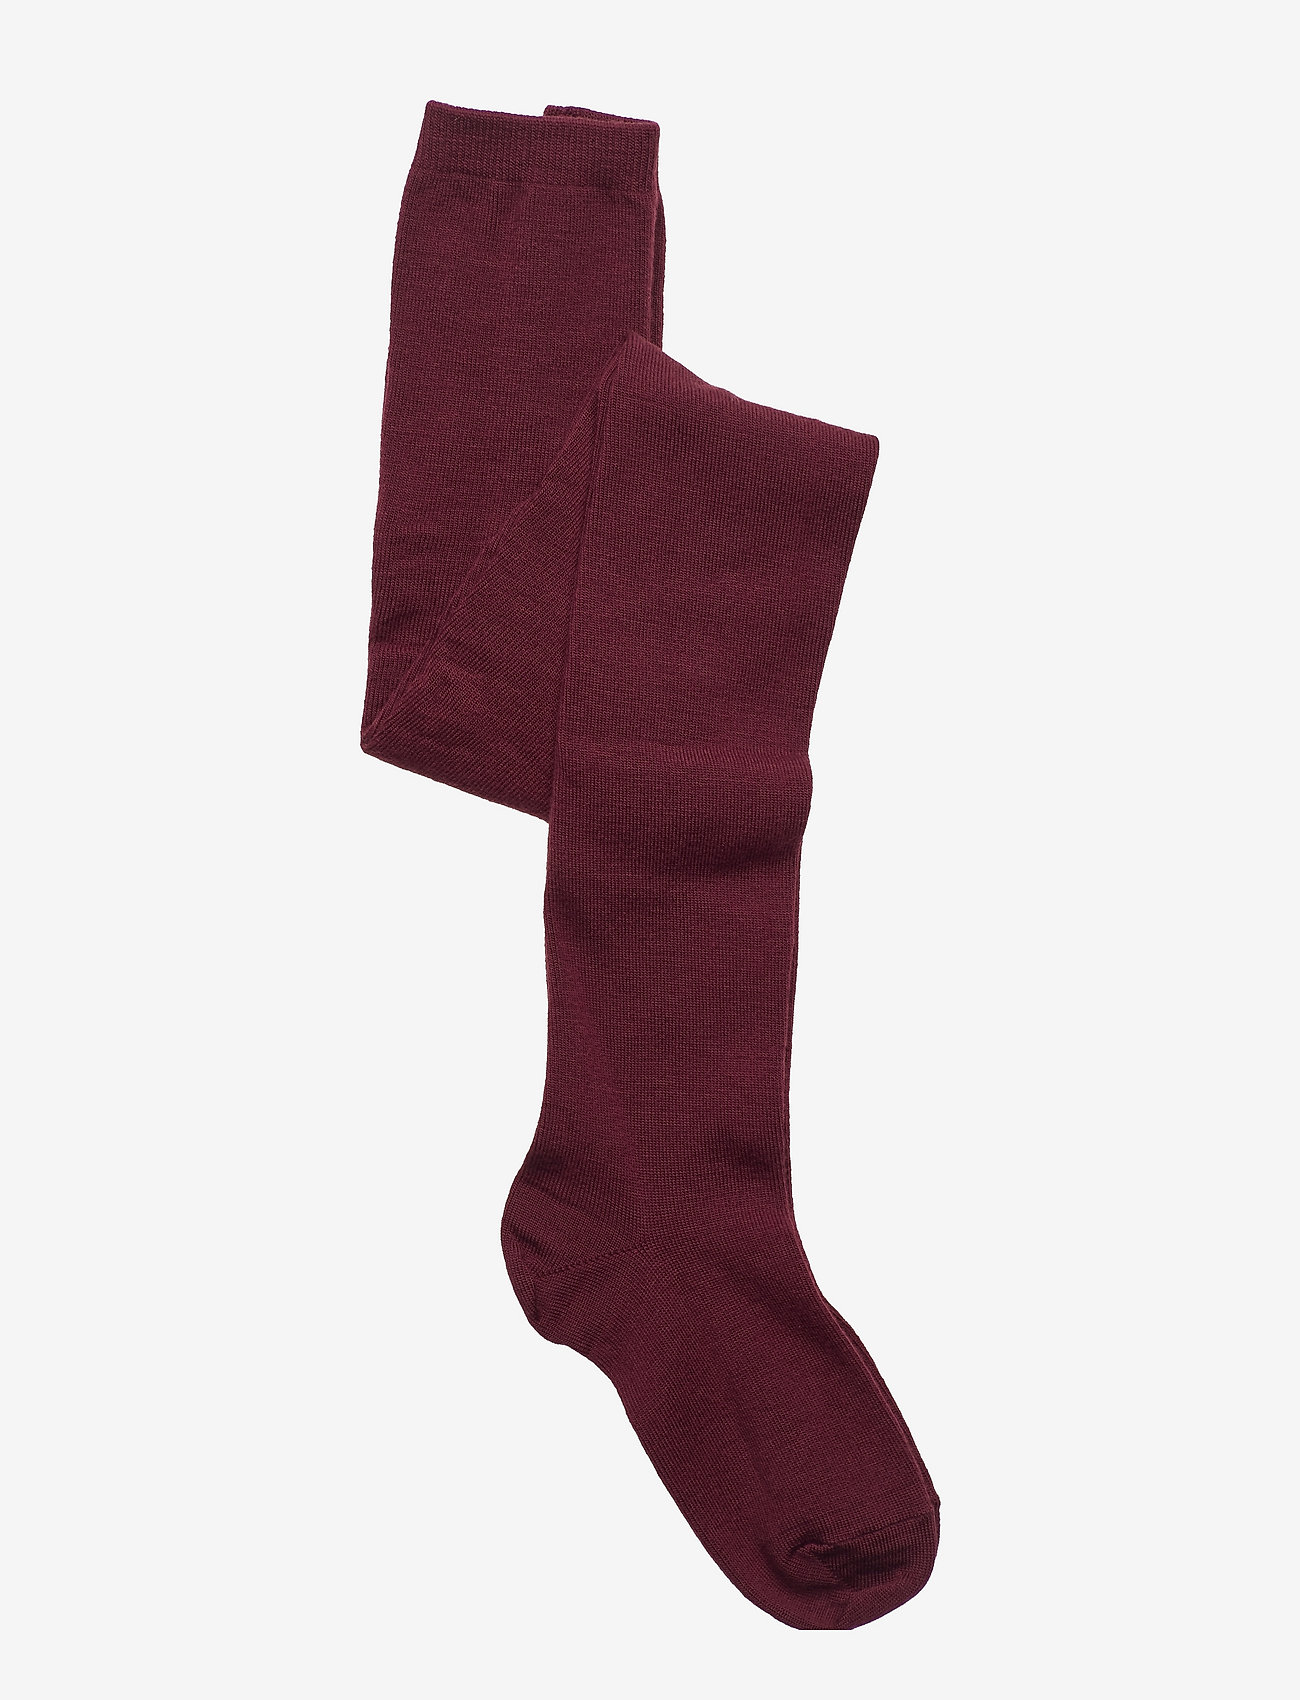 mp Denmark - TIGHTS SOLID PLAIN WOOL - rajstopy - red - 0